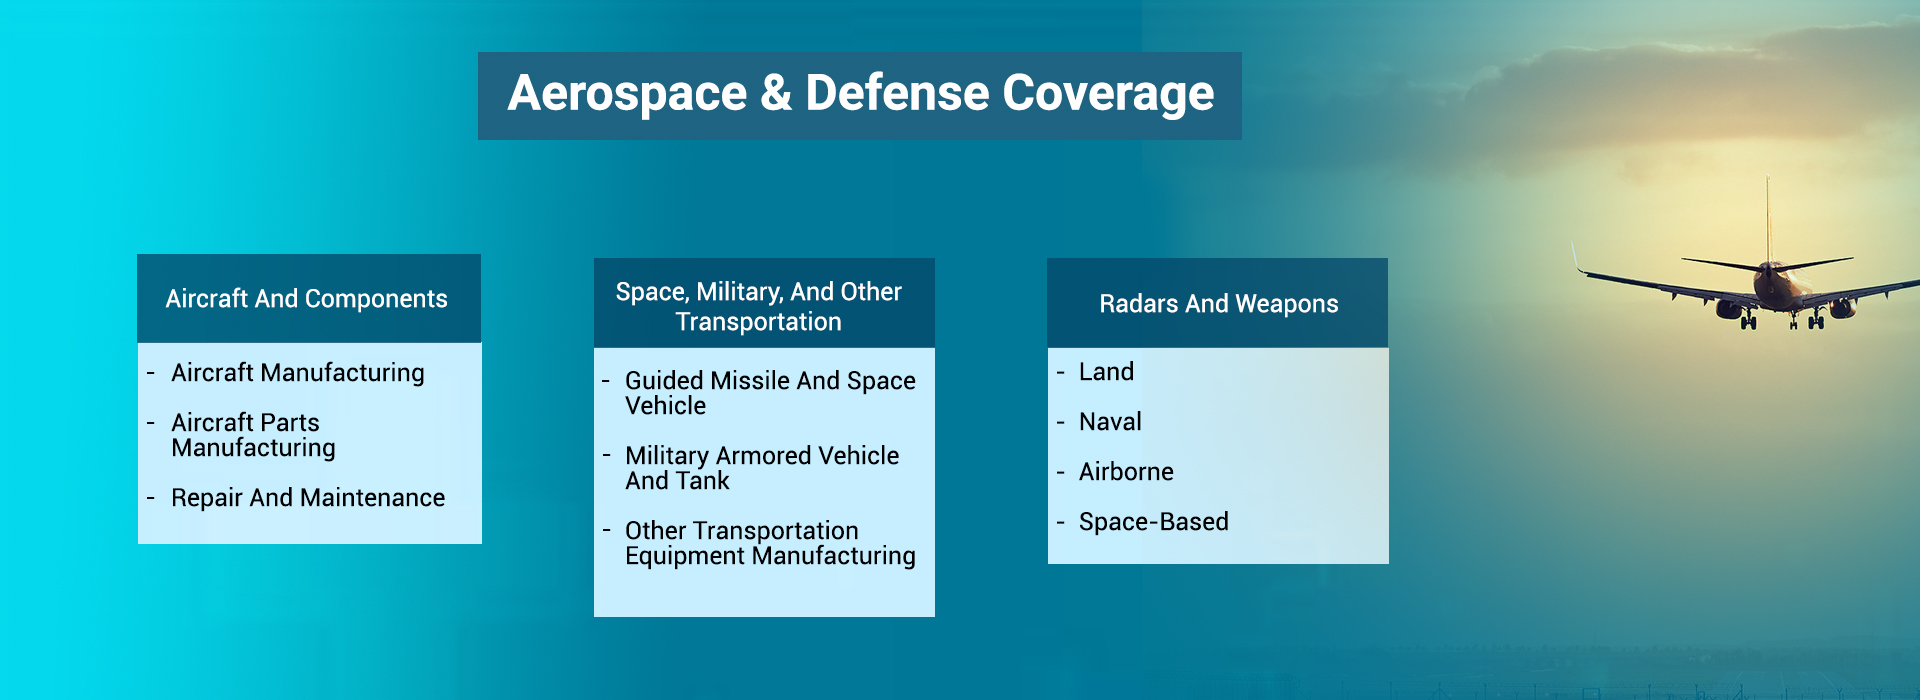 Aerospace and Defense Coverage